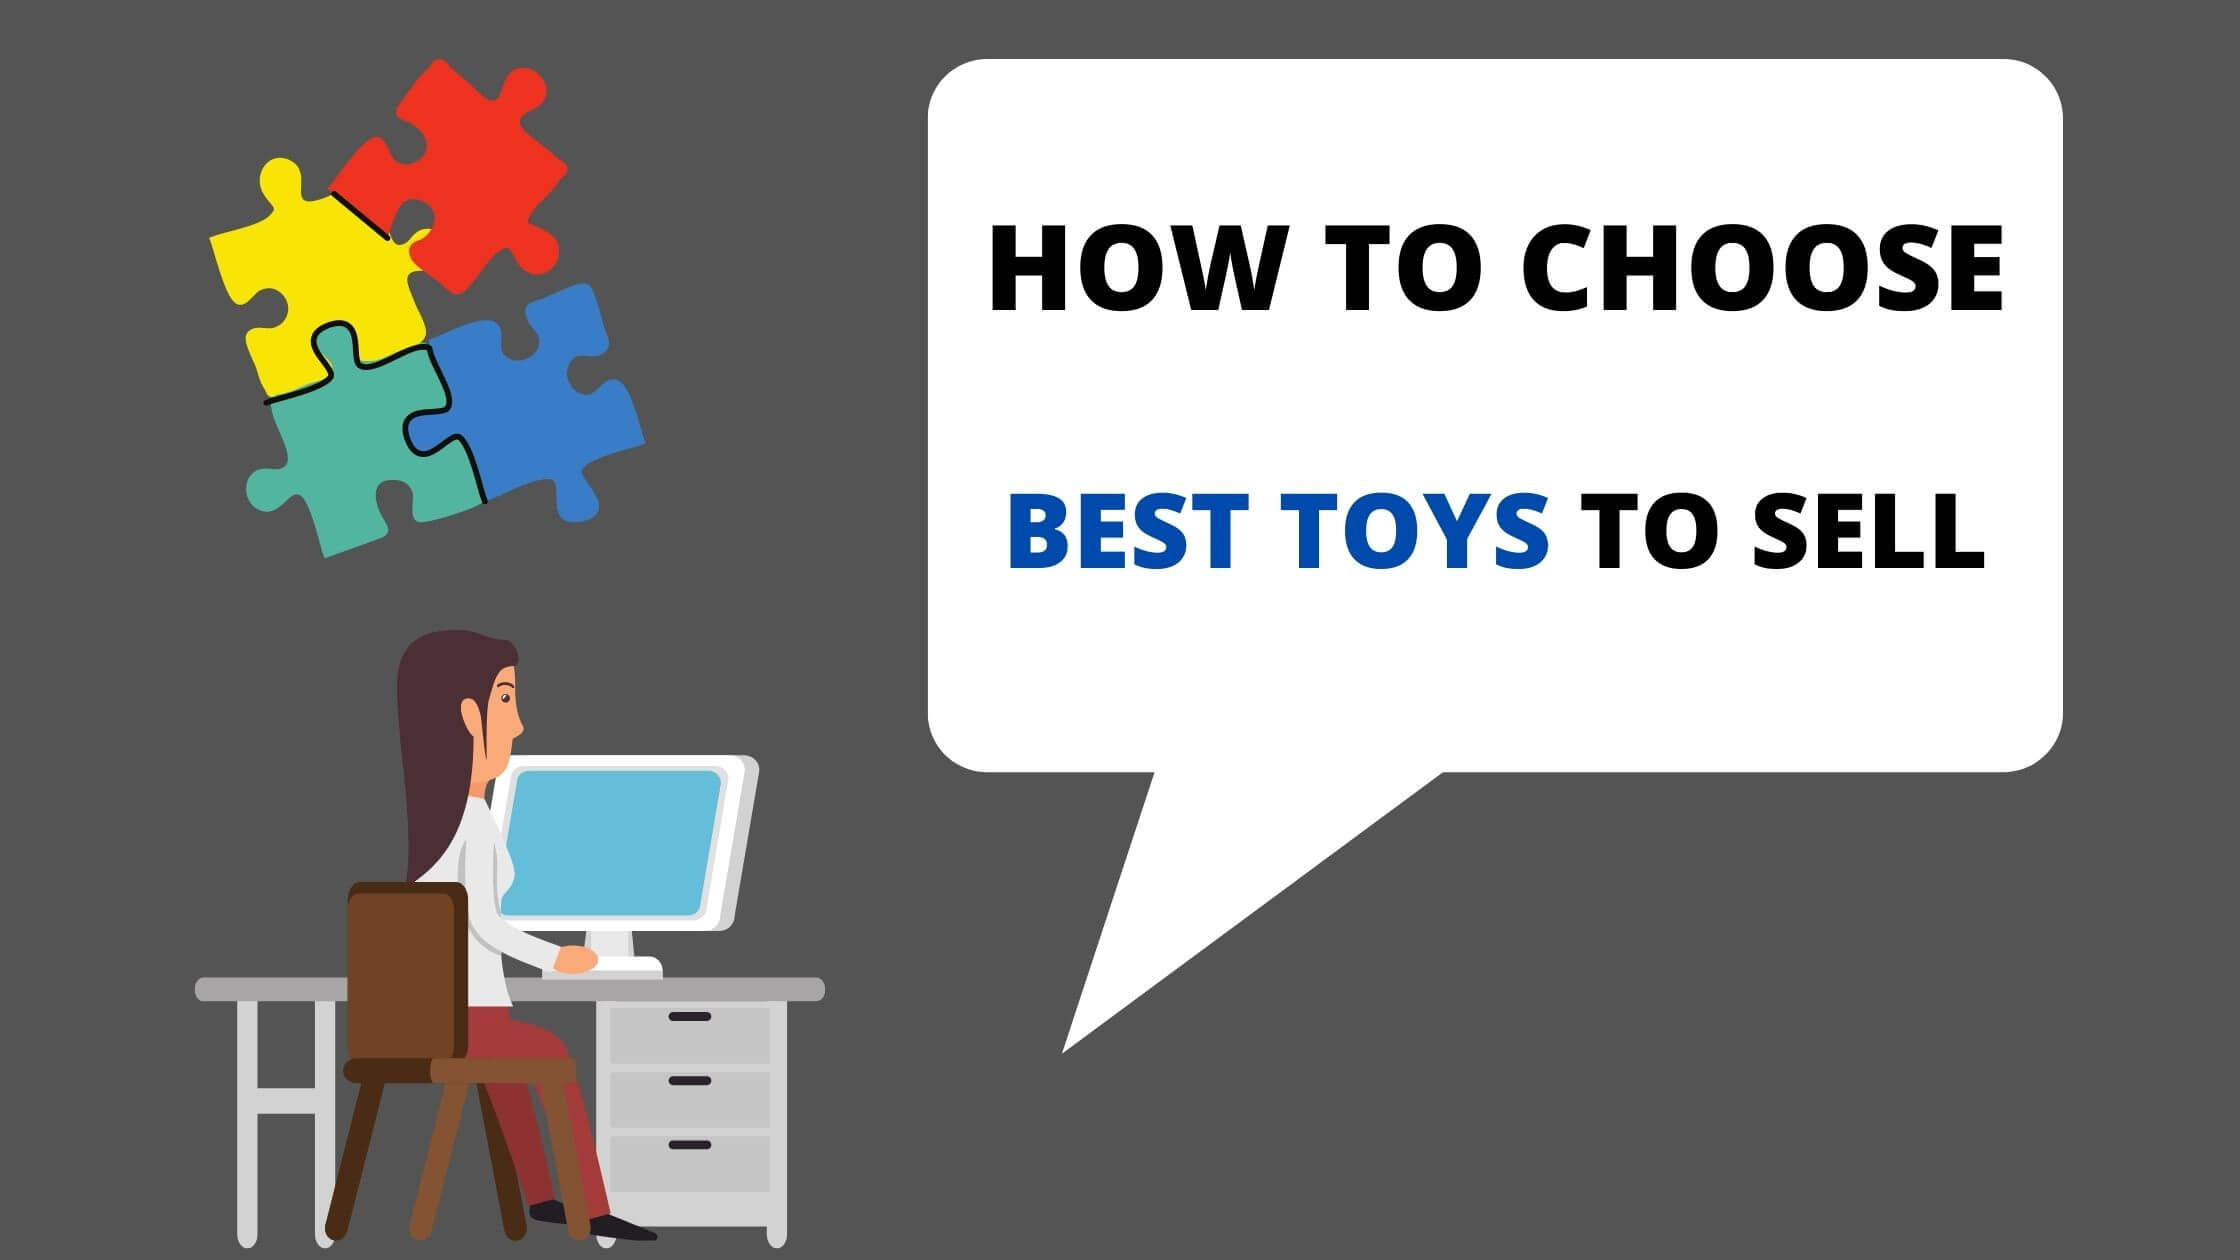 HOW TO CHOOSE BEST TOYS